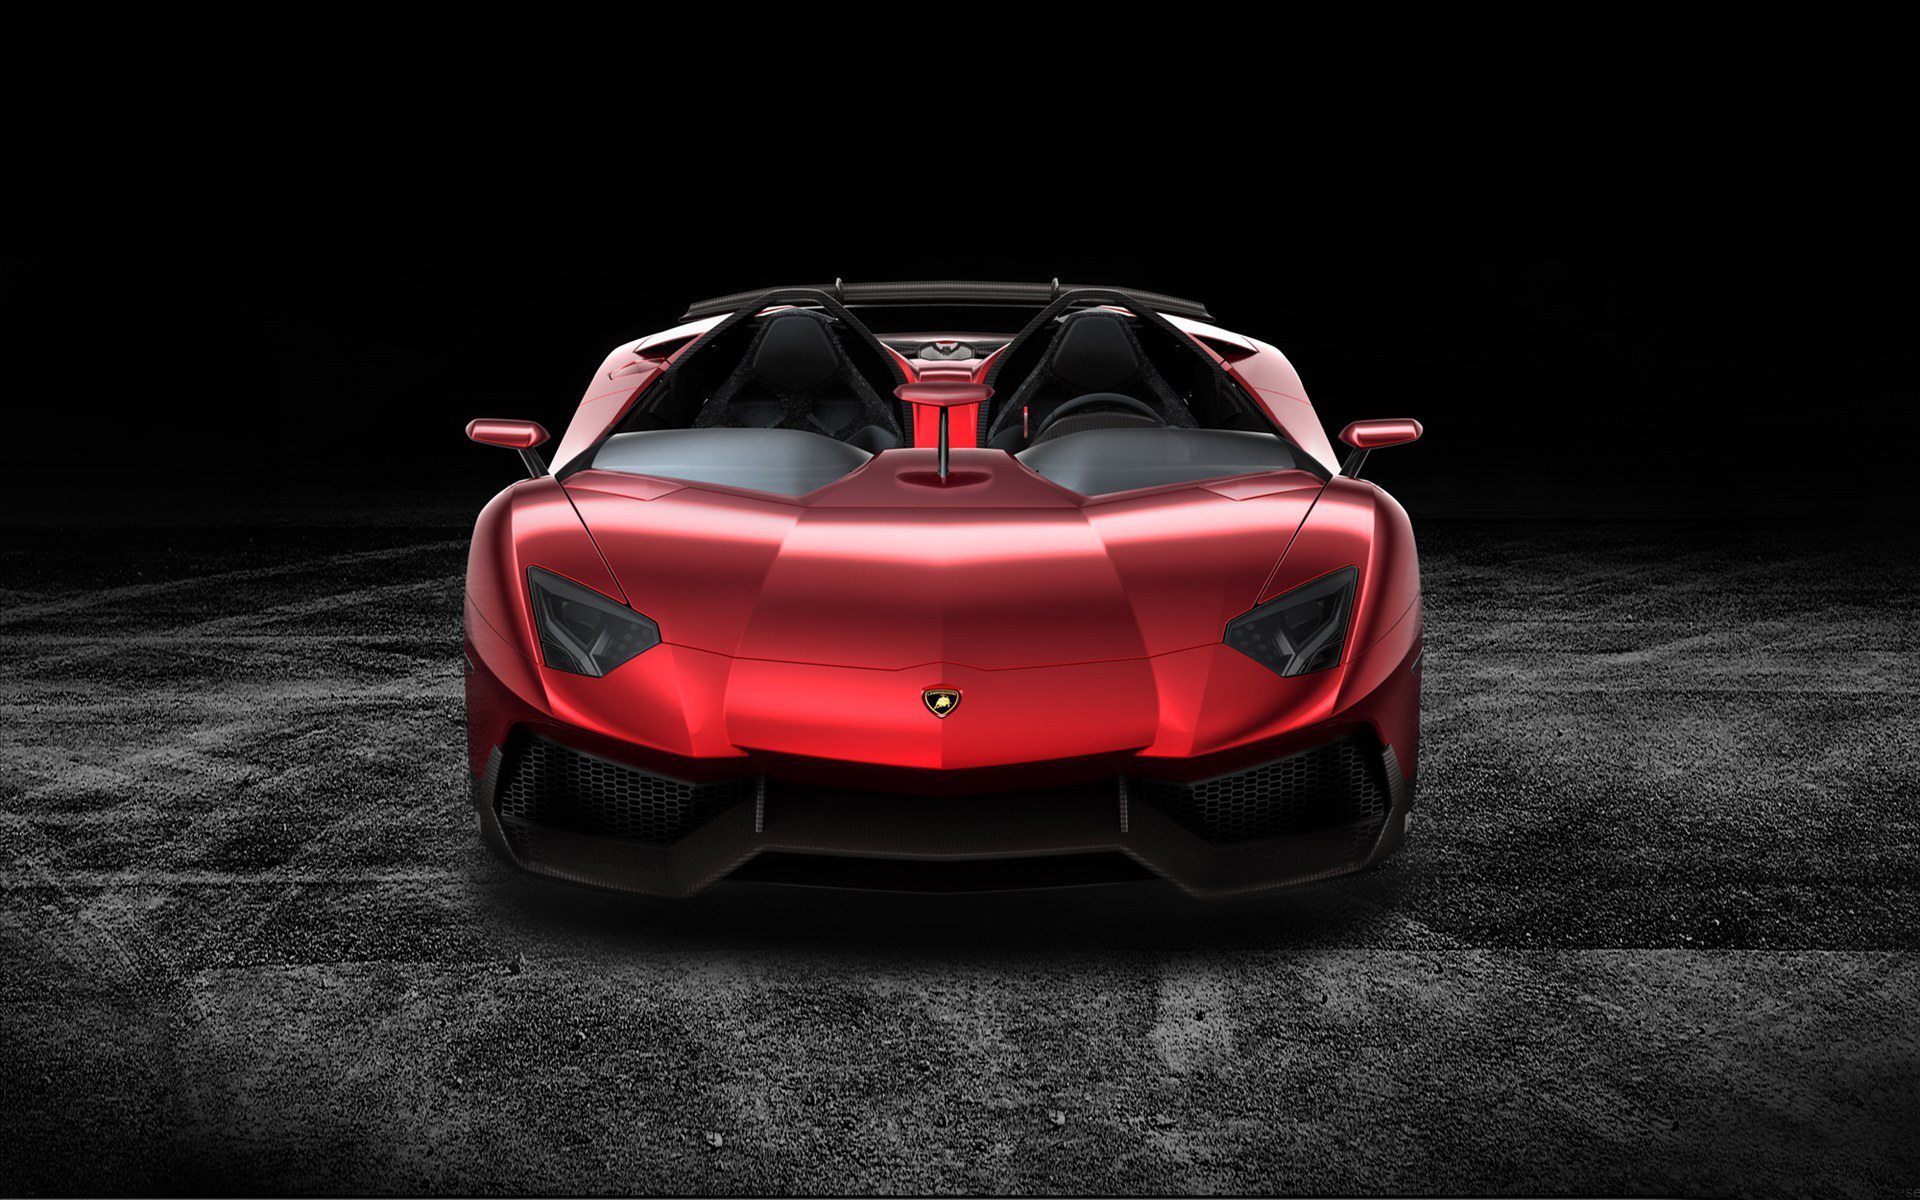 2012 Lamborghini Aventador J 2 Wallpaper | HD Car Wallpapers